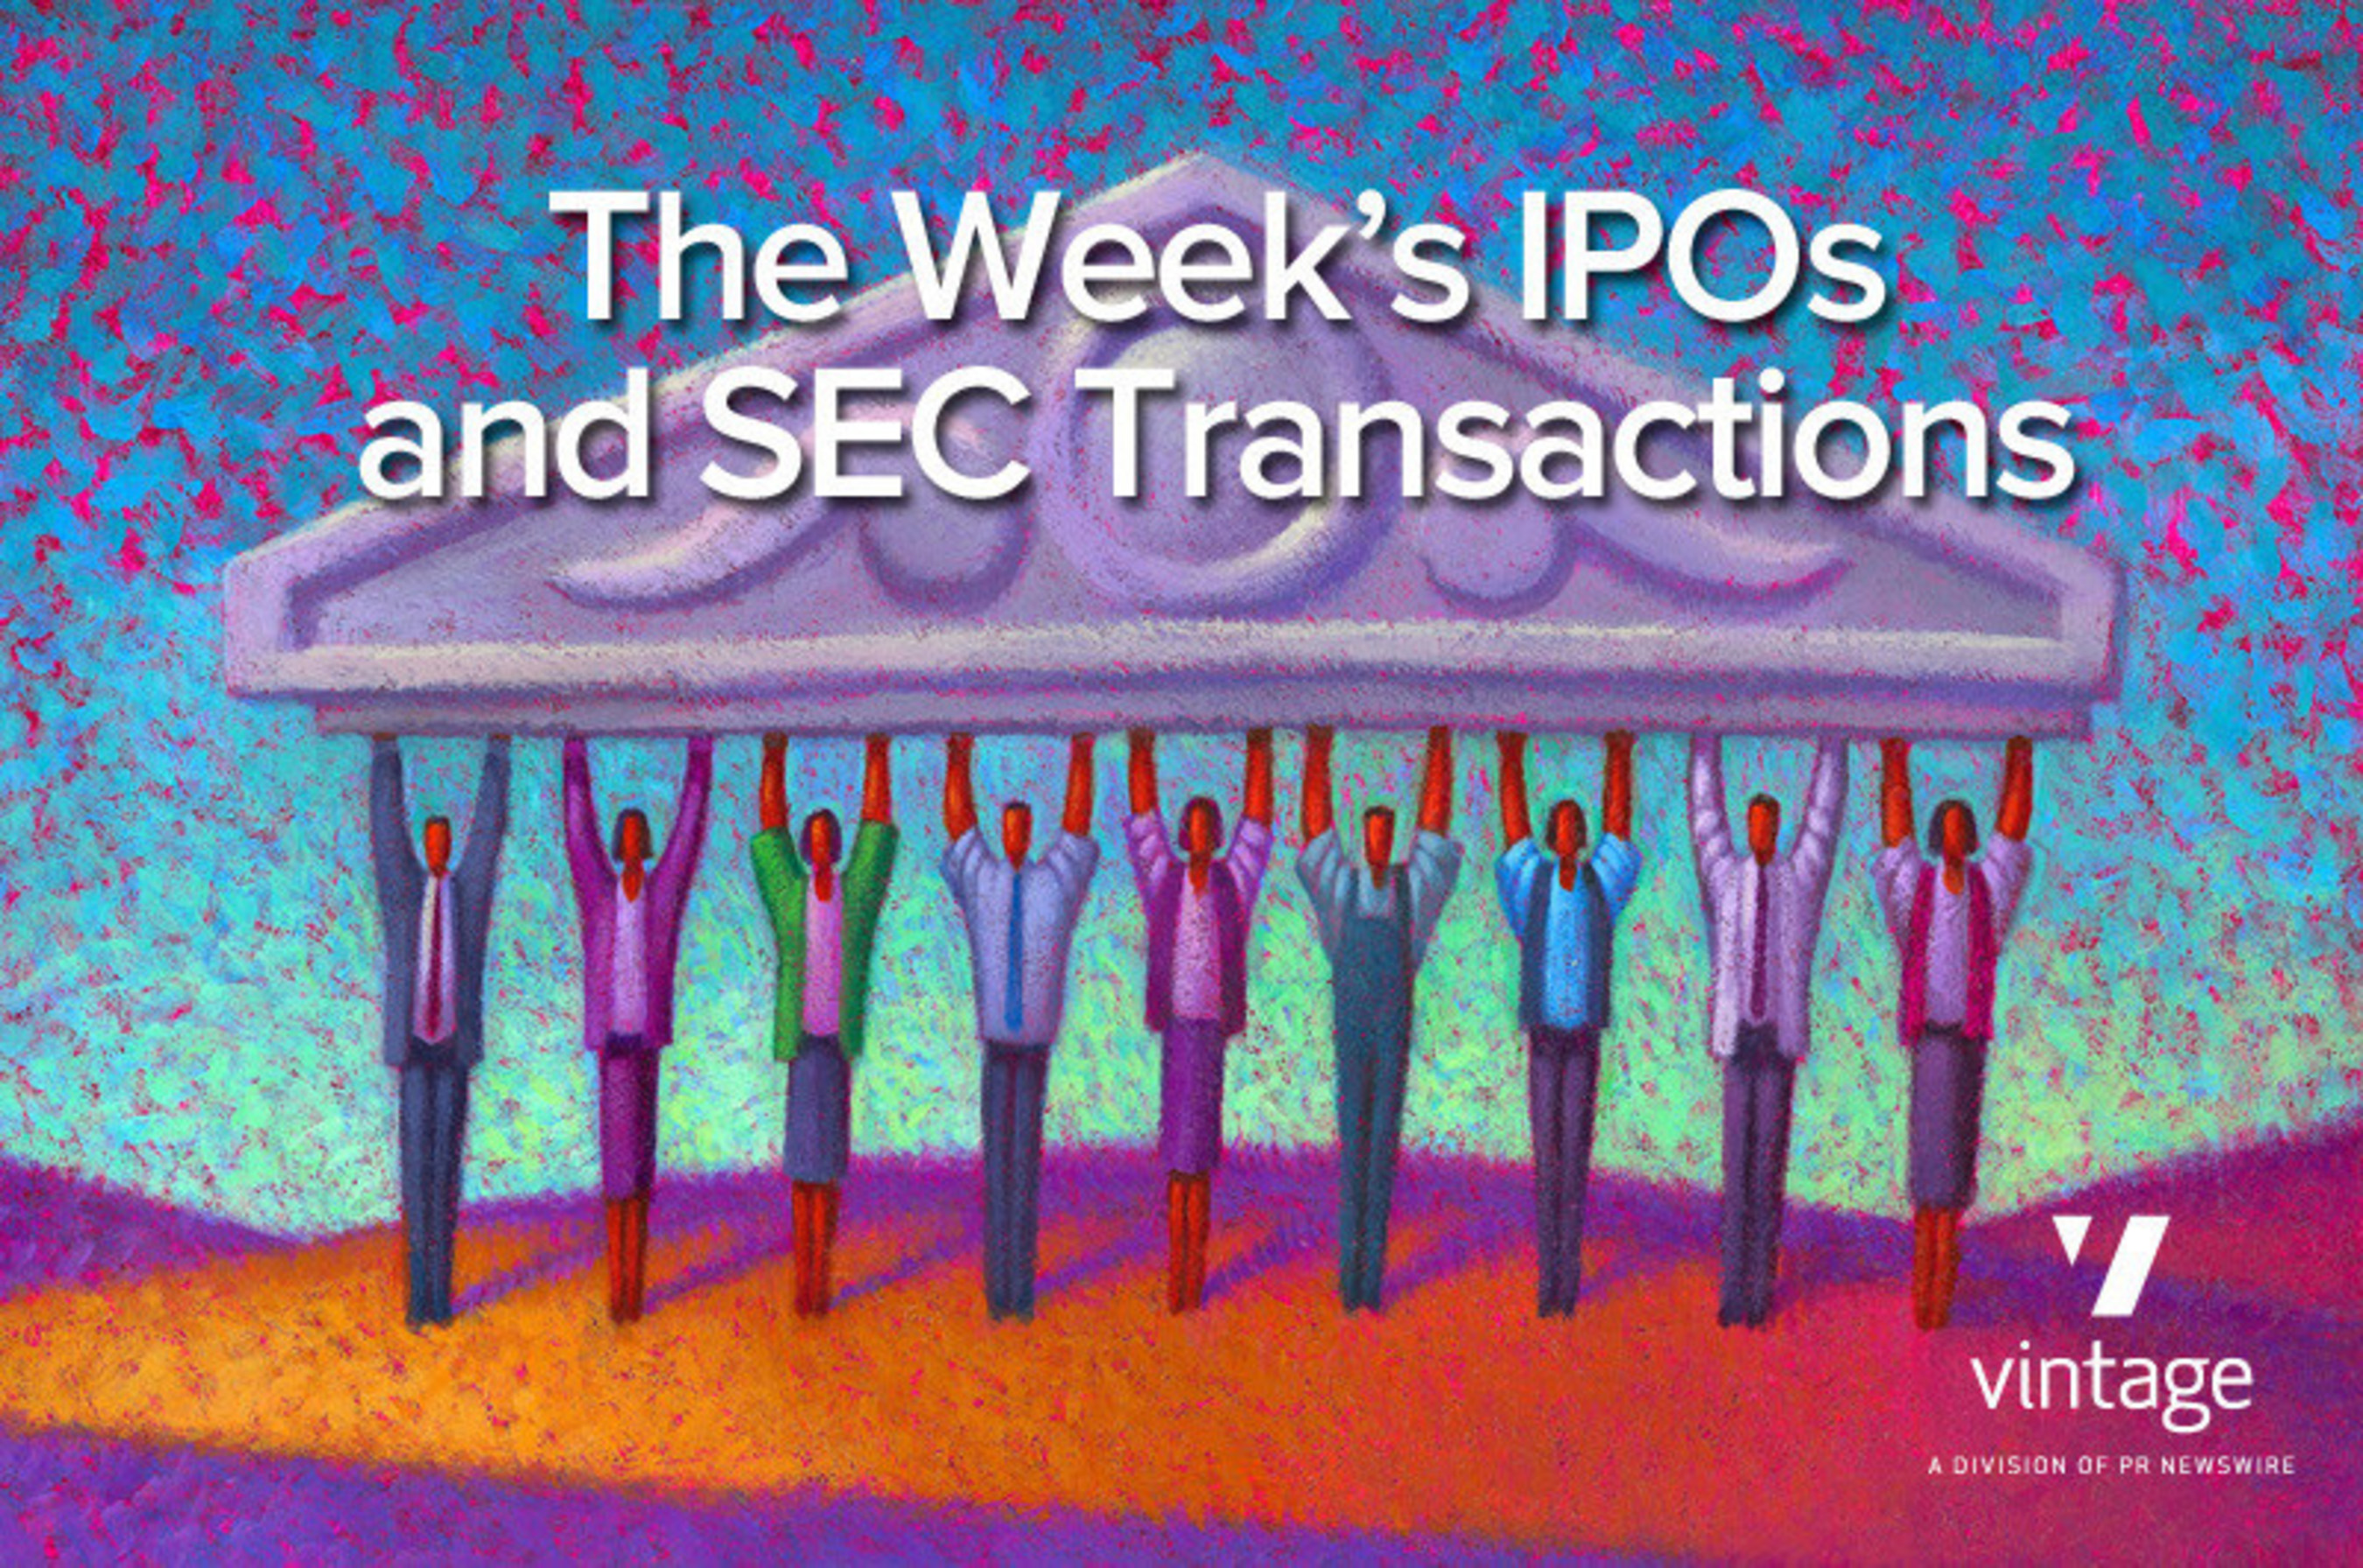 Stay updated on the week's IPOs and Transactions on the Building Shareholder Confidence blog, http://irblog.prnewswire.com